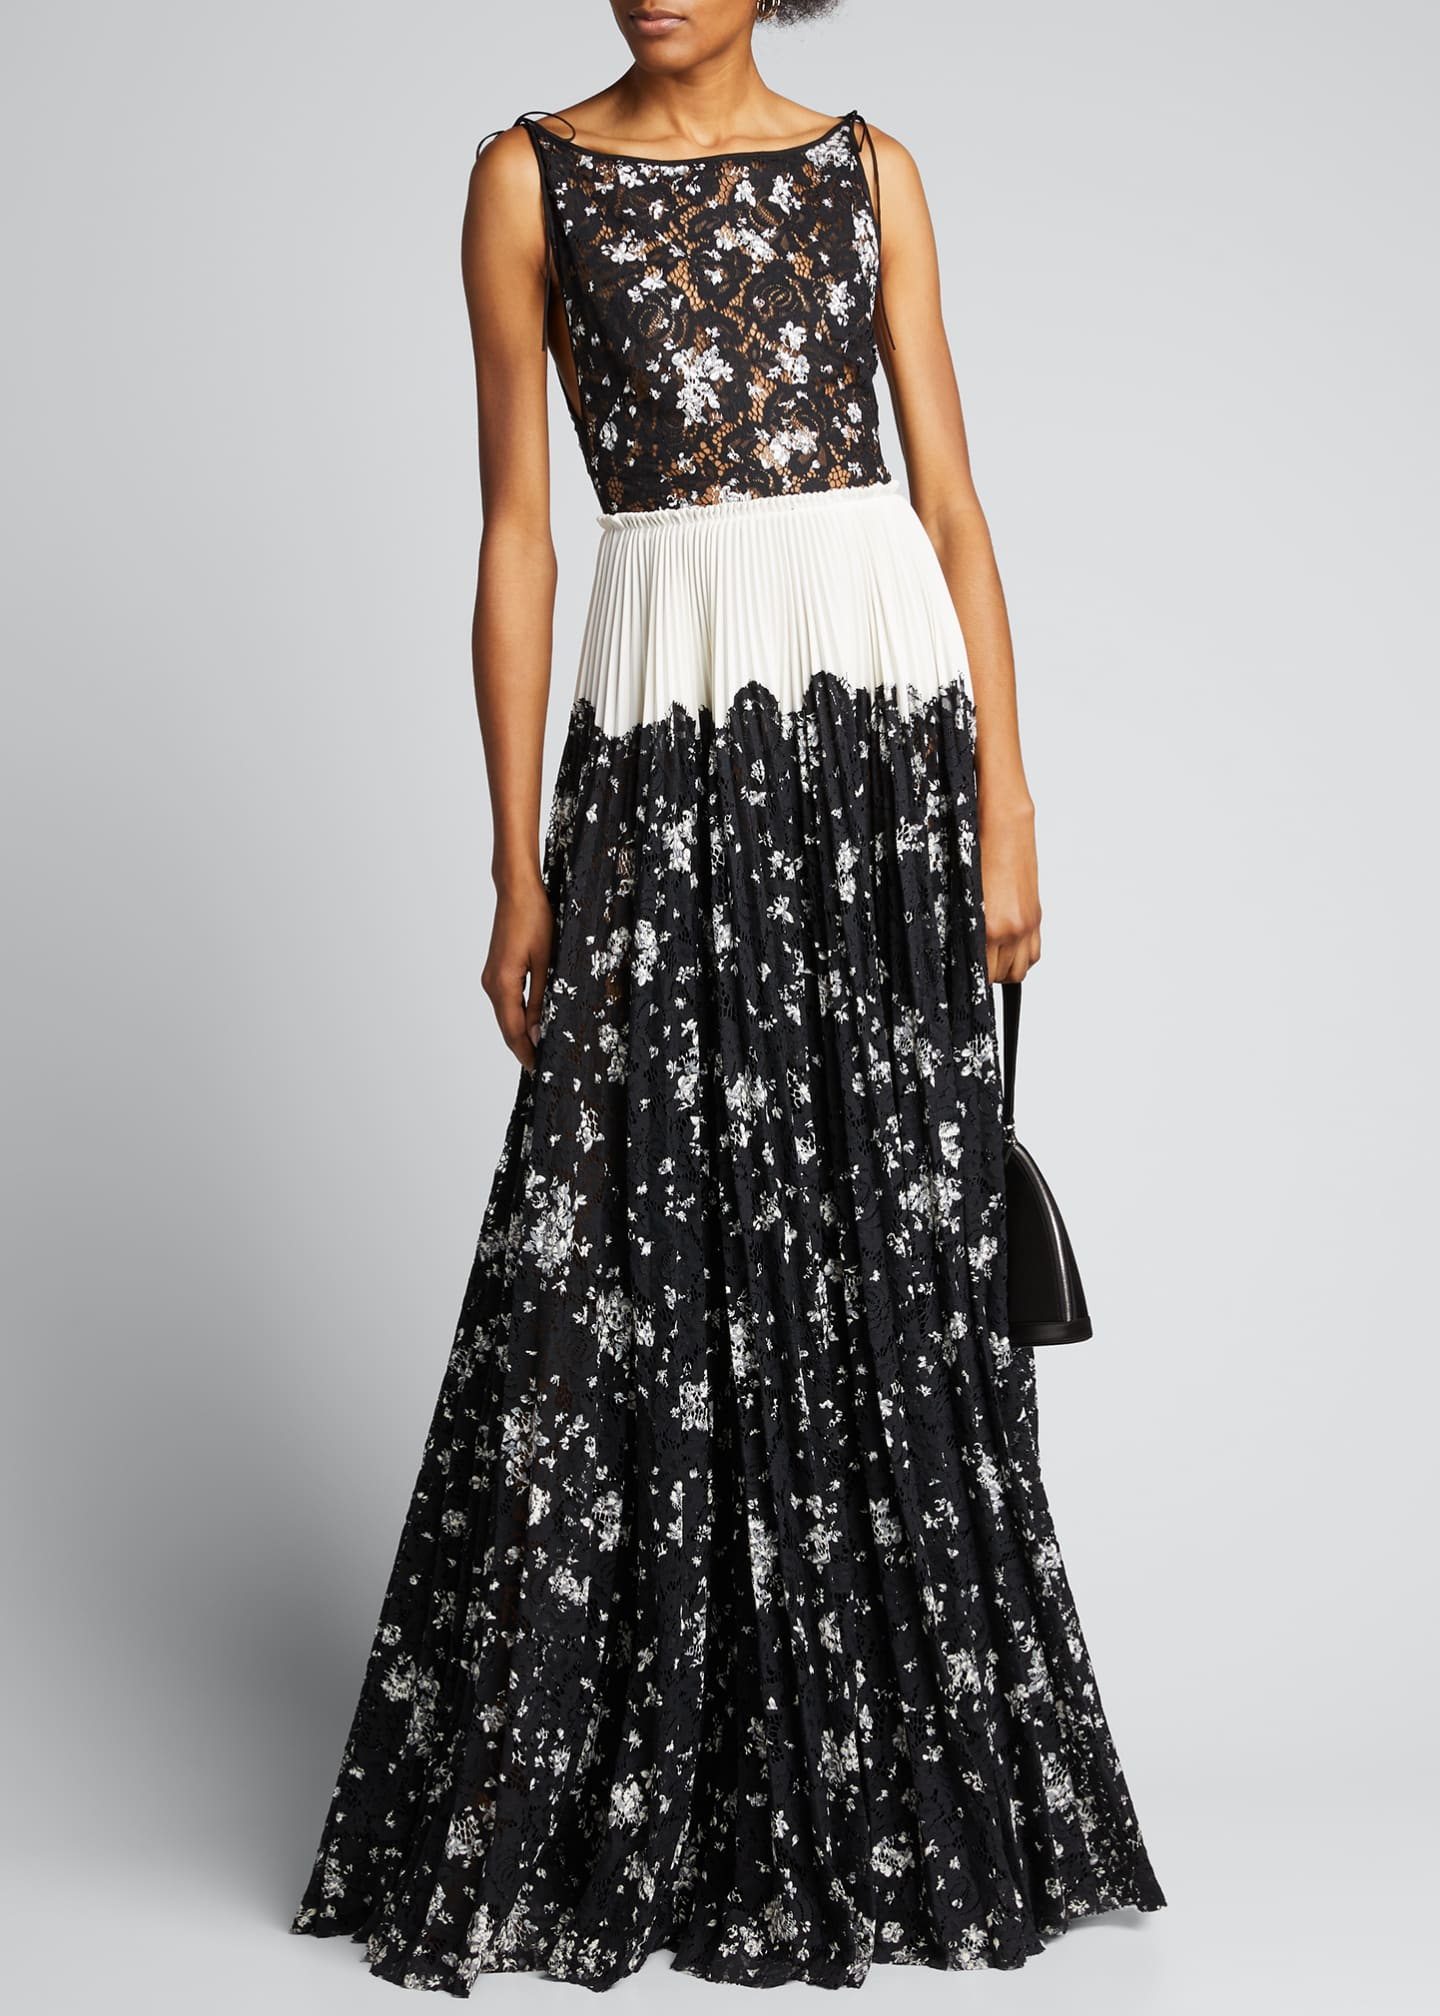 Lela Rose Floral Printed Corded Lace Pleated Boatneck